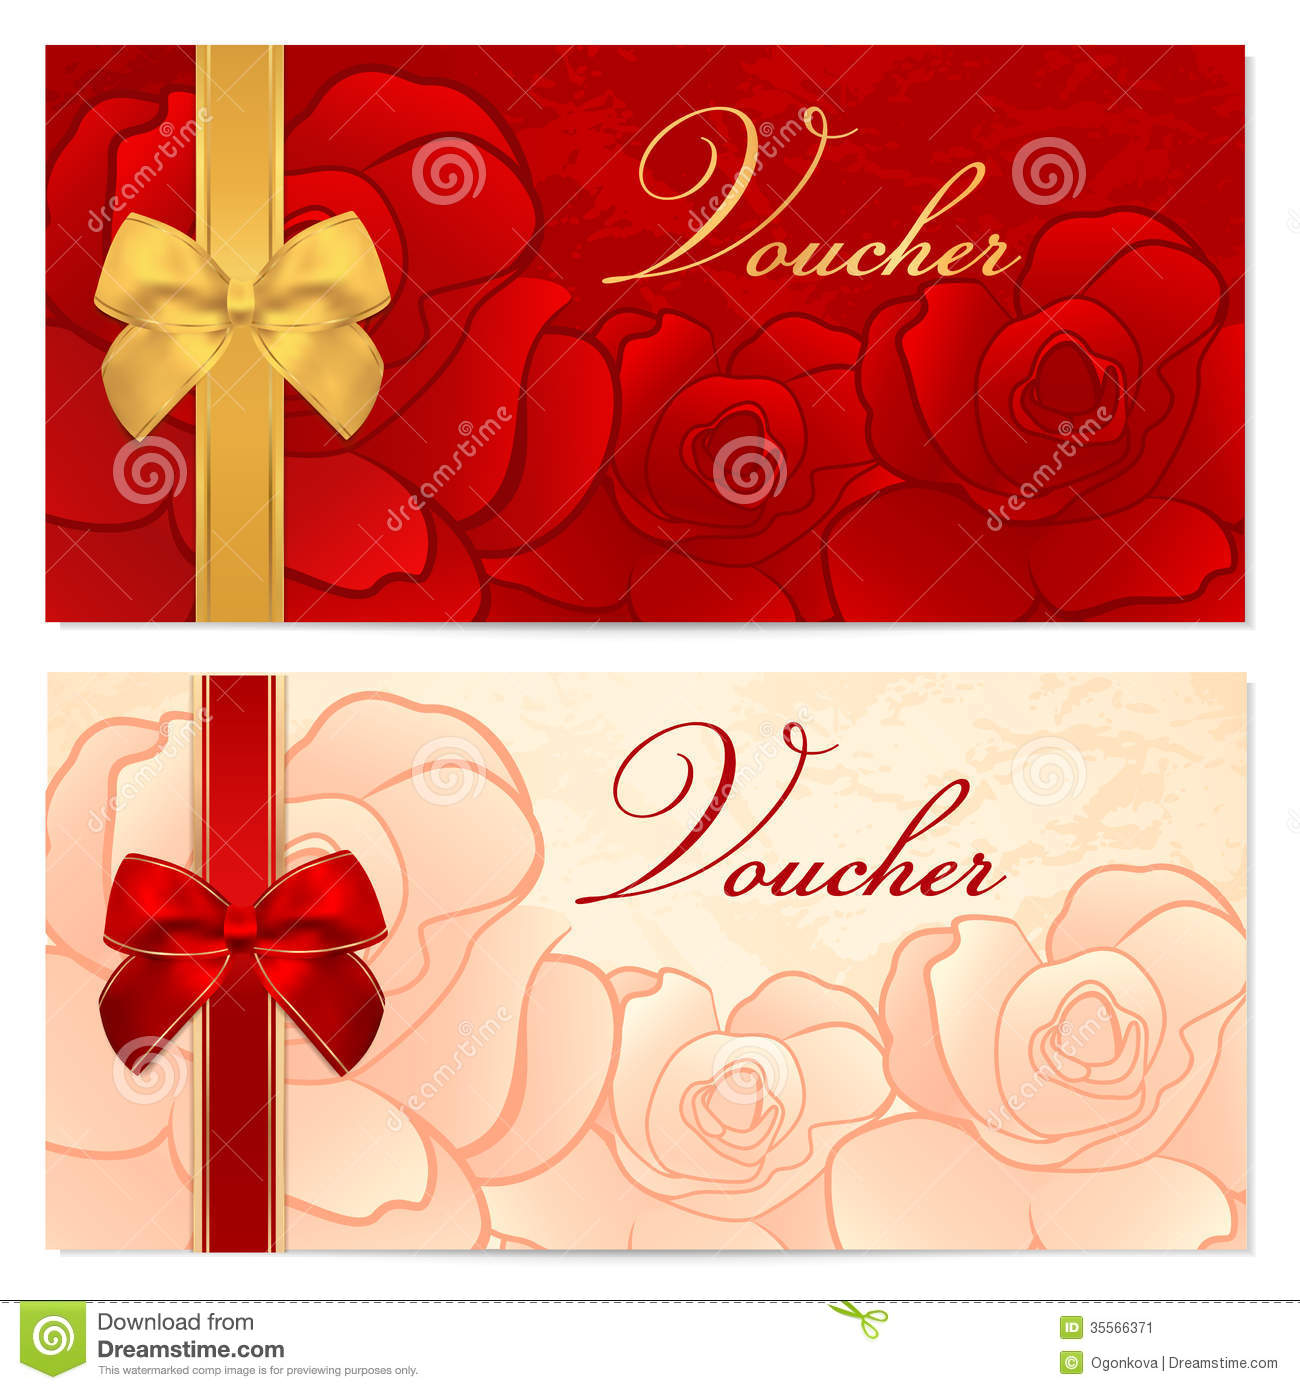 Gift Certificate, Voucher, Coupon Template. Bow, F  Money Voucher Template